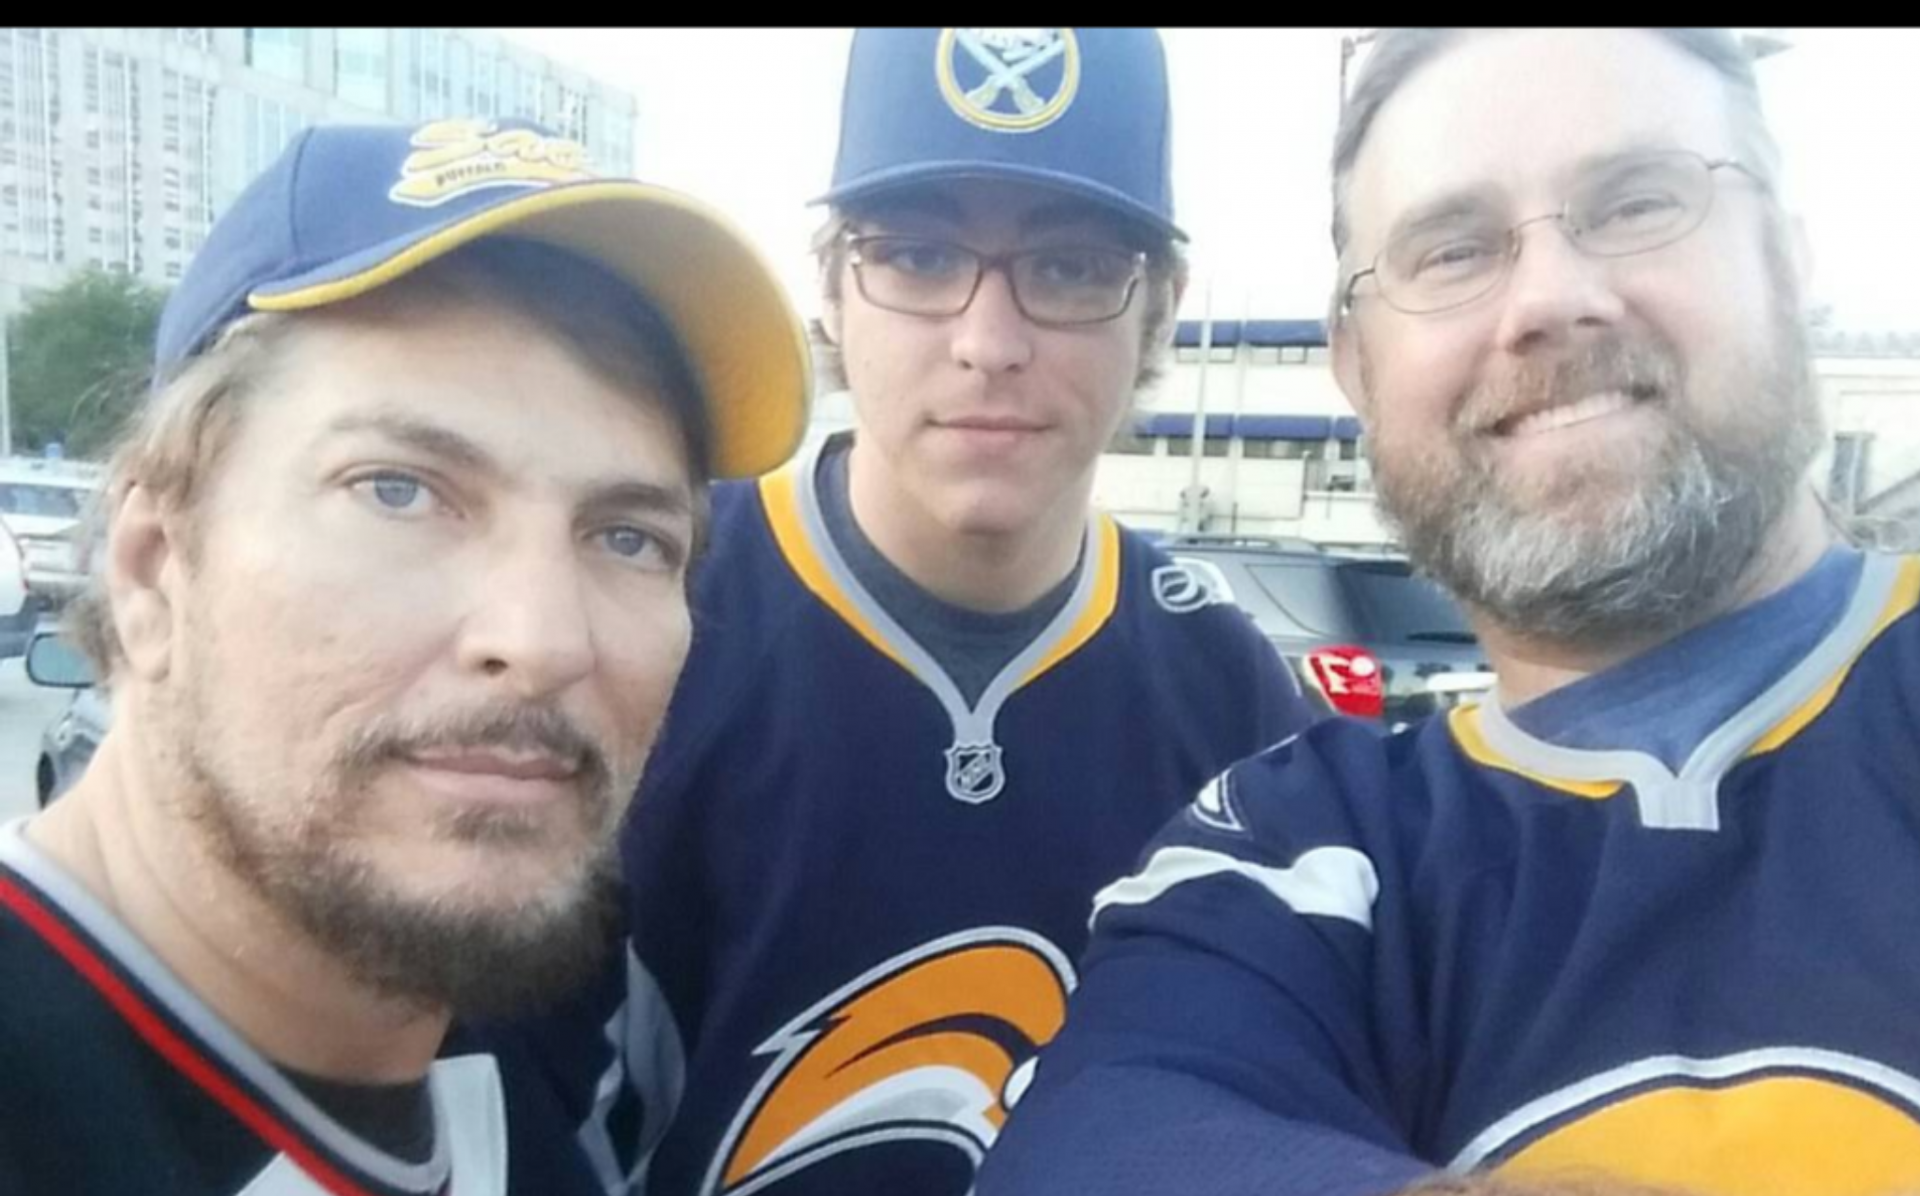 Trip to Tampa to see our Sabres play.